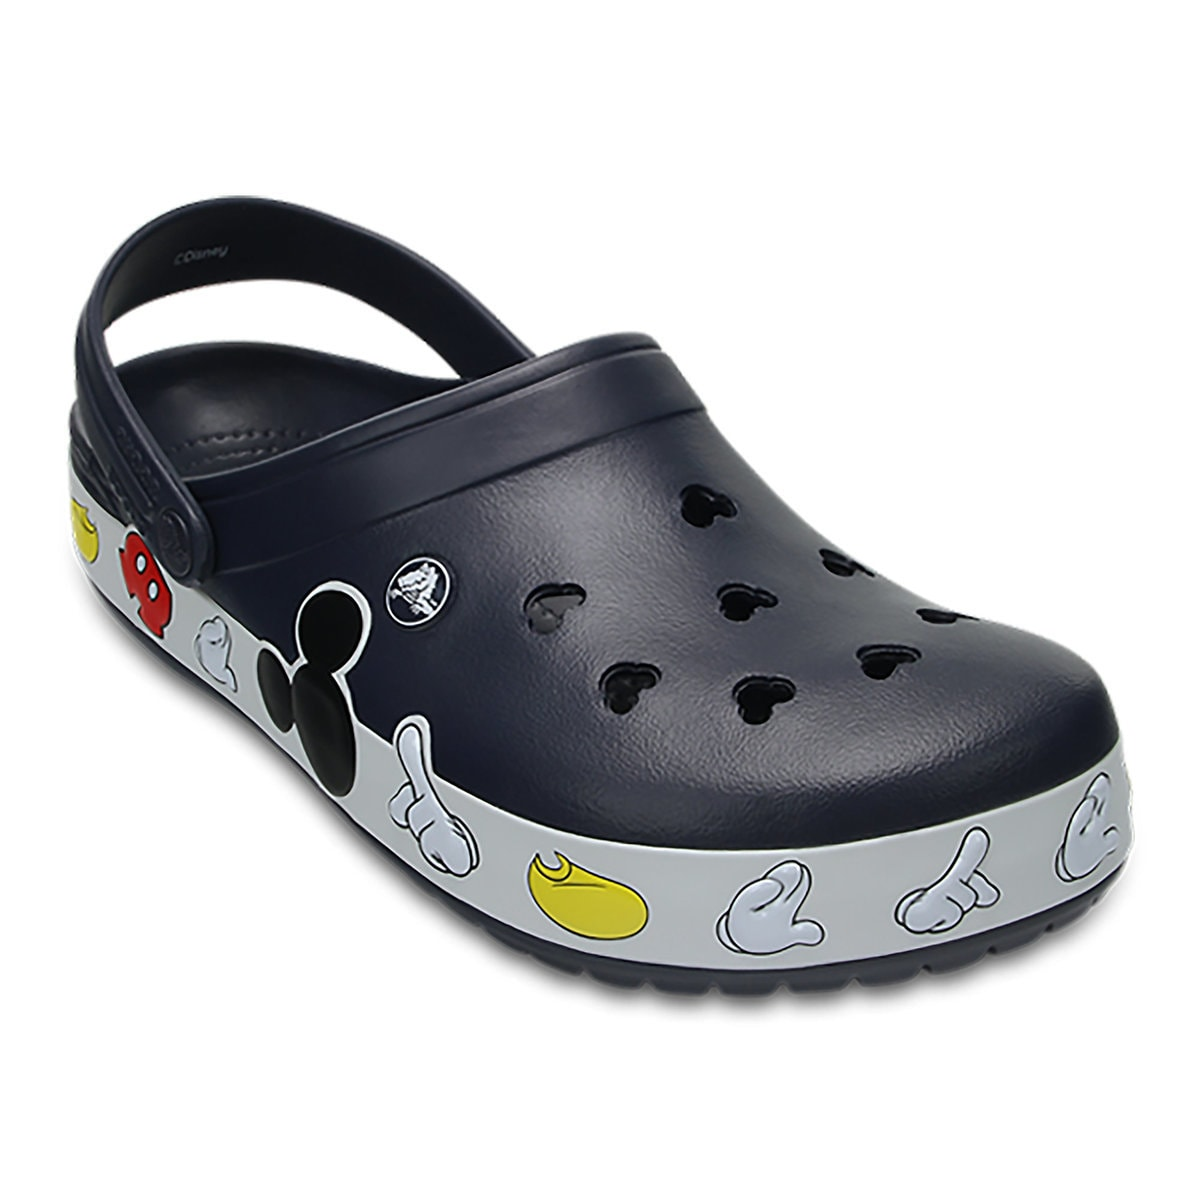 828e906dbbd0 Product Image of Mickey Mouse Crocs™ Clogs for Men   1